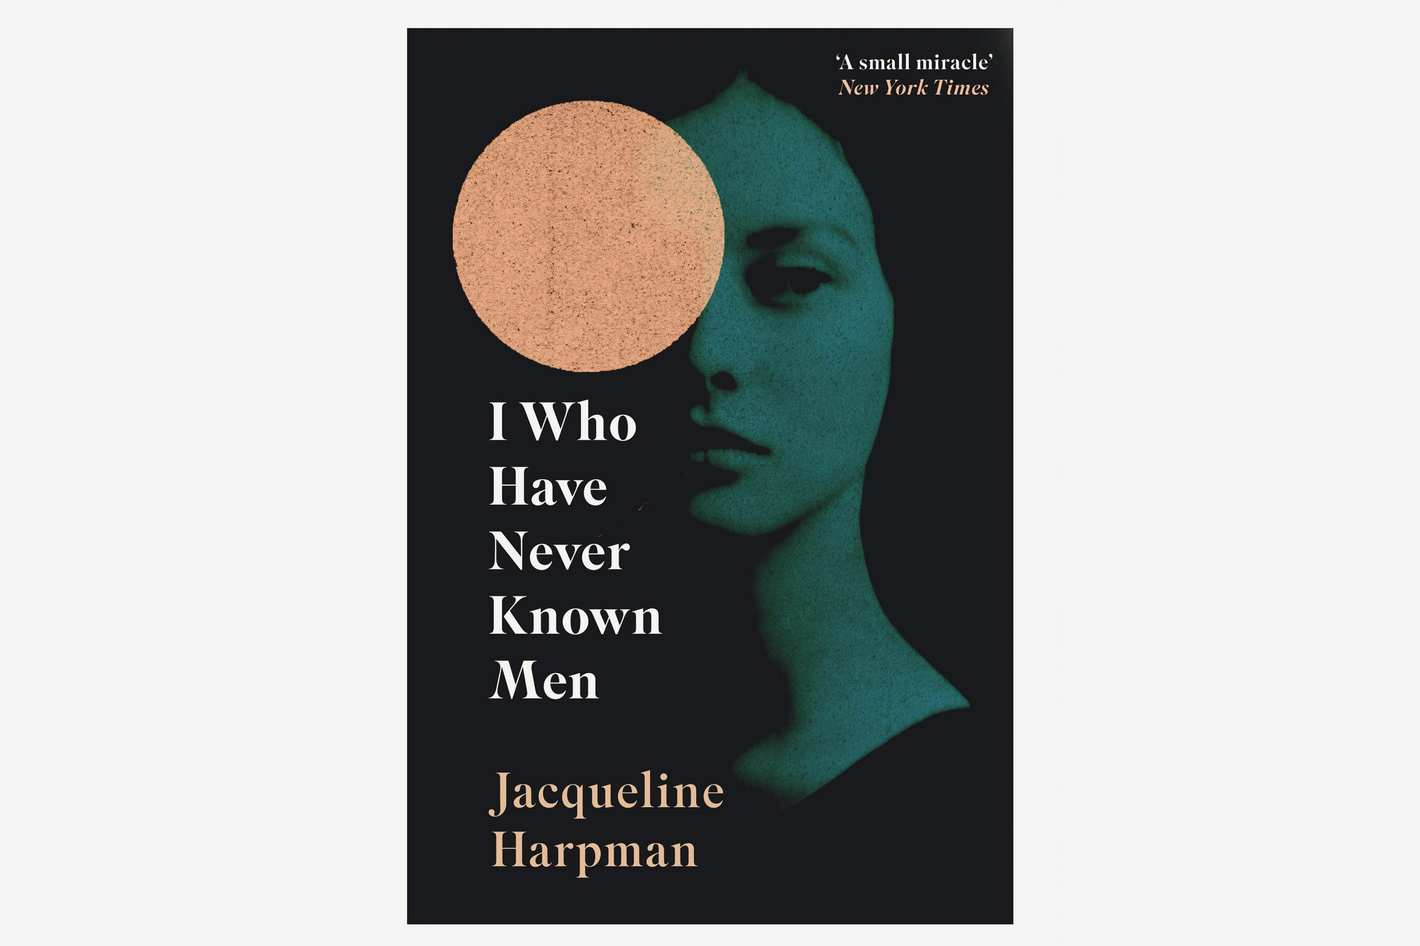 'I Who Have Never Known Men' by Jacqueline Harpman